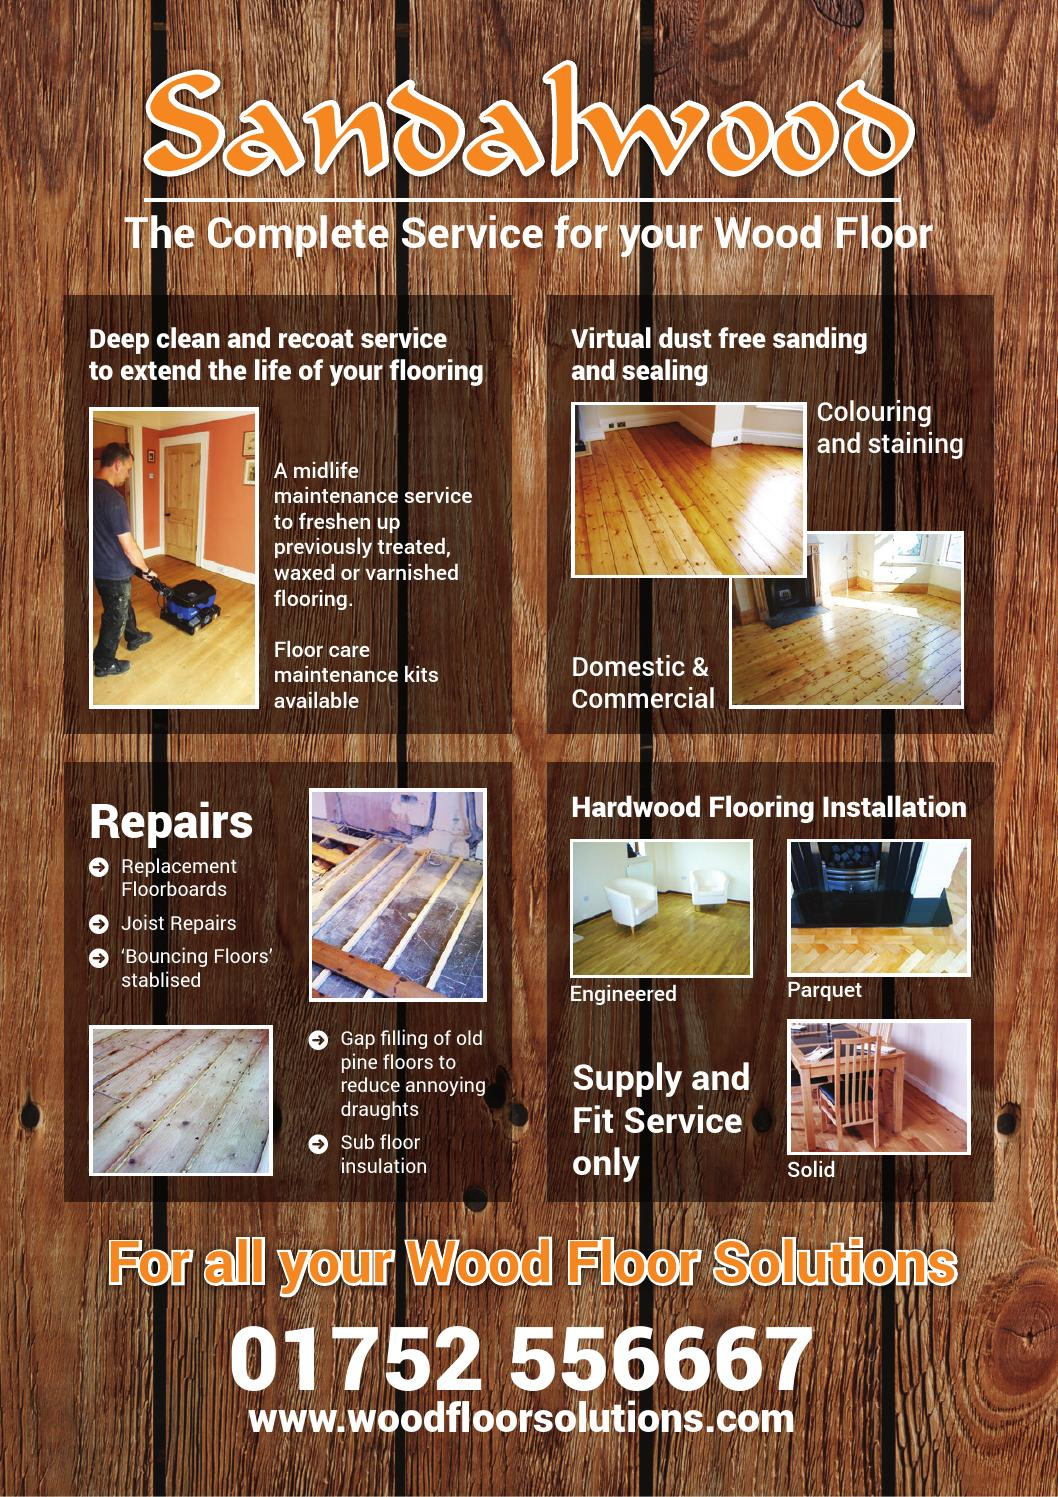 wood filler for hardwood floor gaps of plymouth magazine october 2015 by cornerstone vision issuu pertaining to page 67